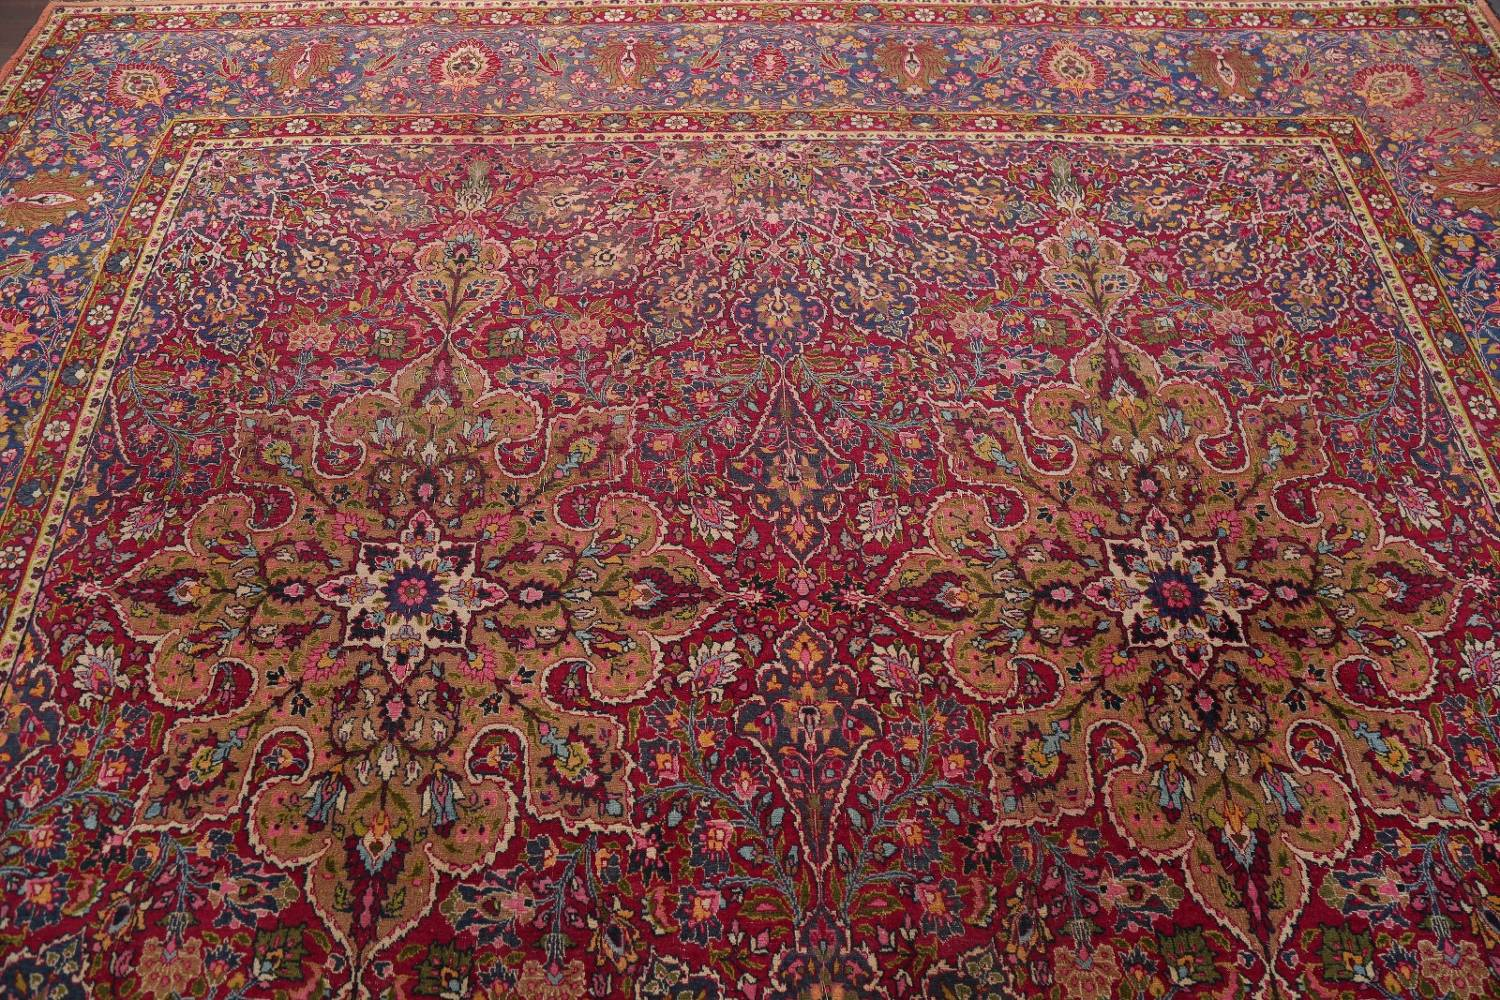 All-Over Floral 11x16 Mashad Persian Area Rug image 19